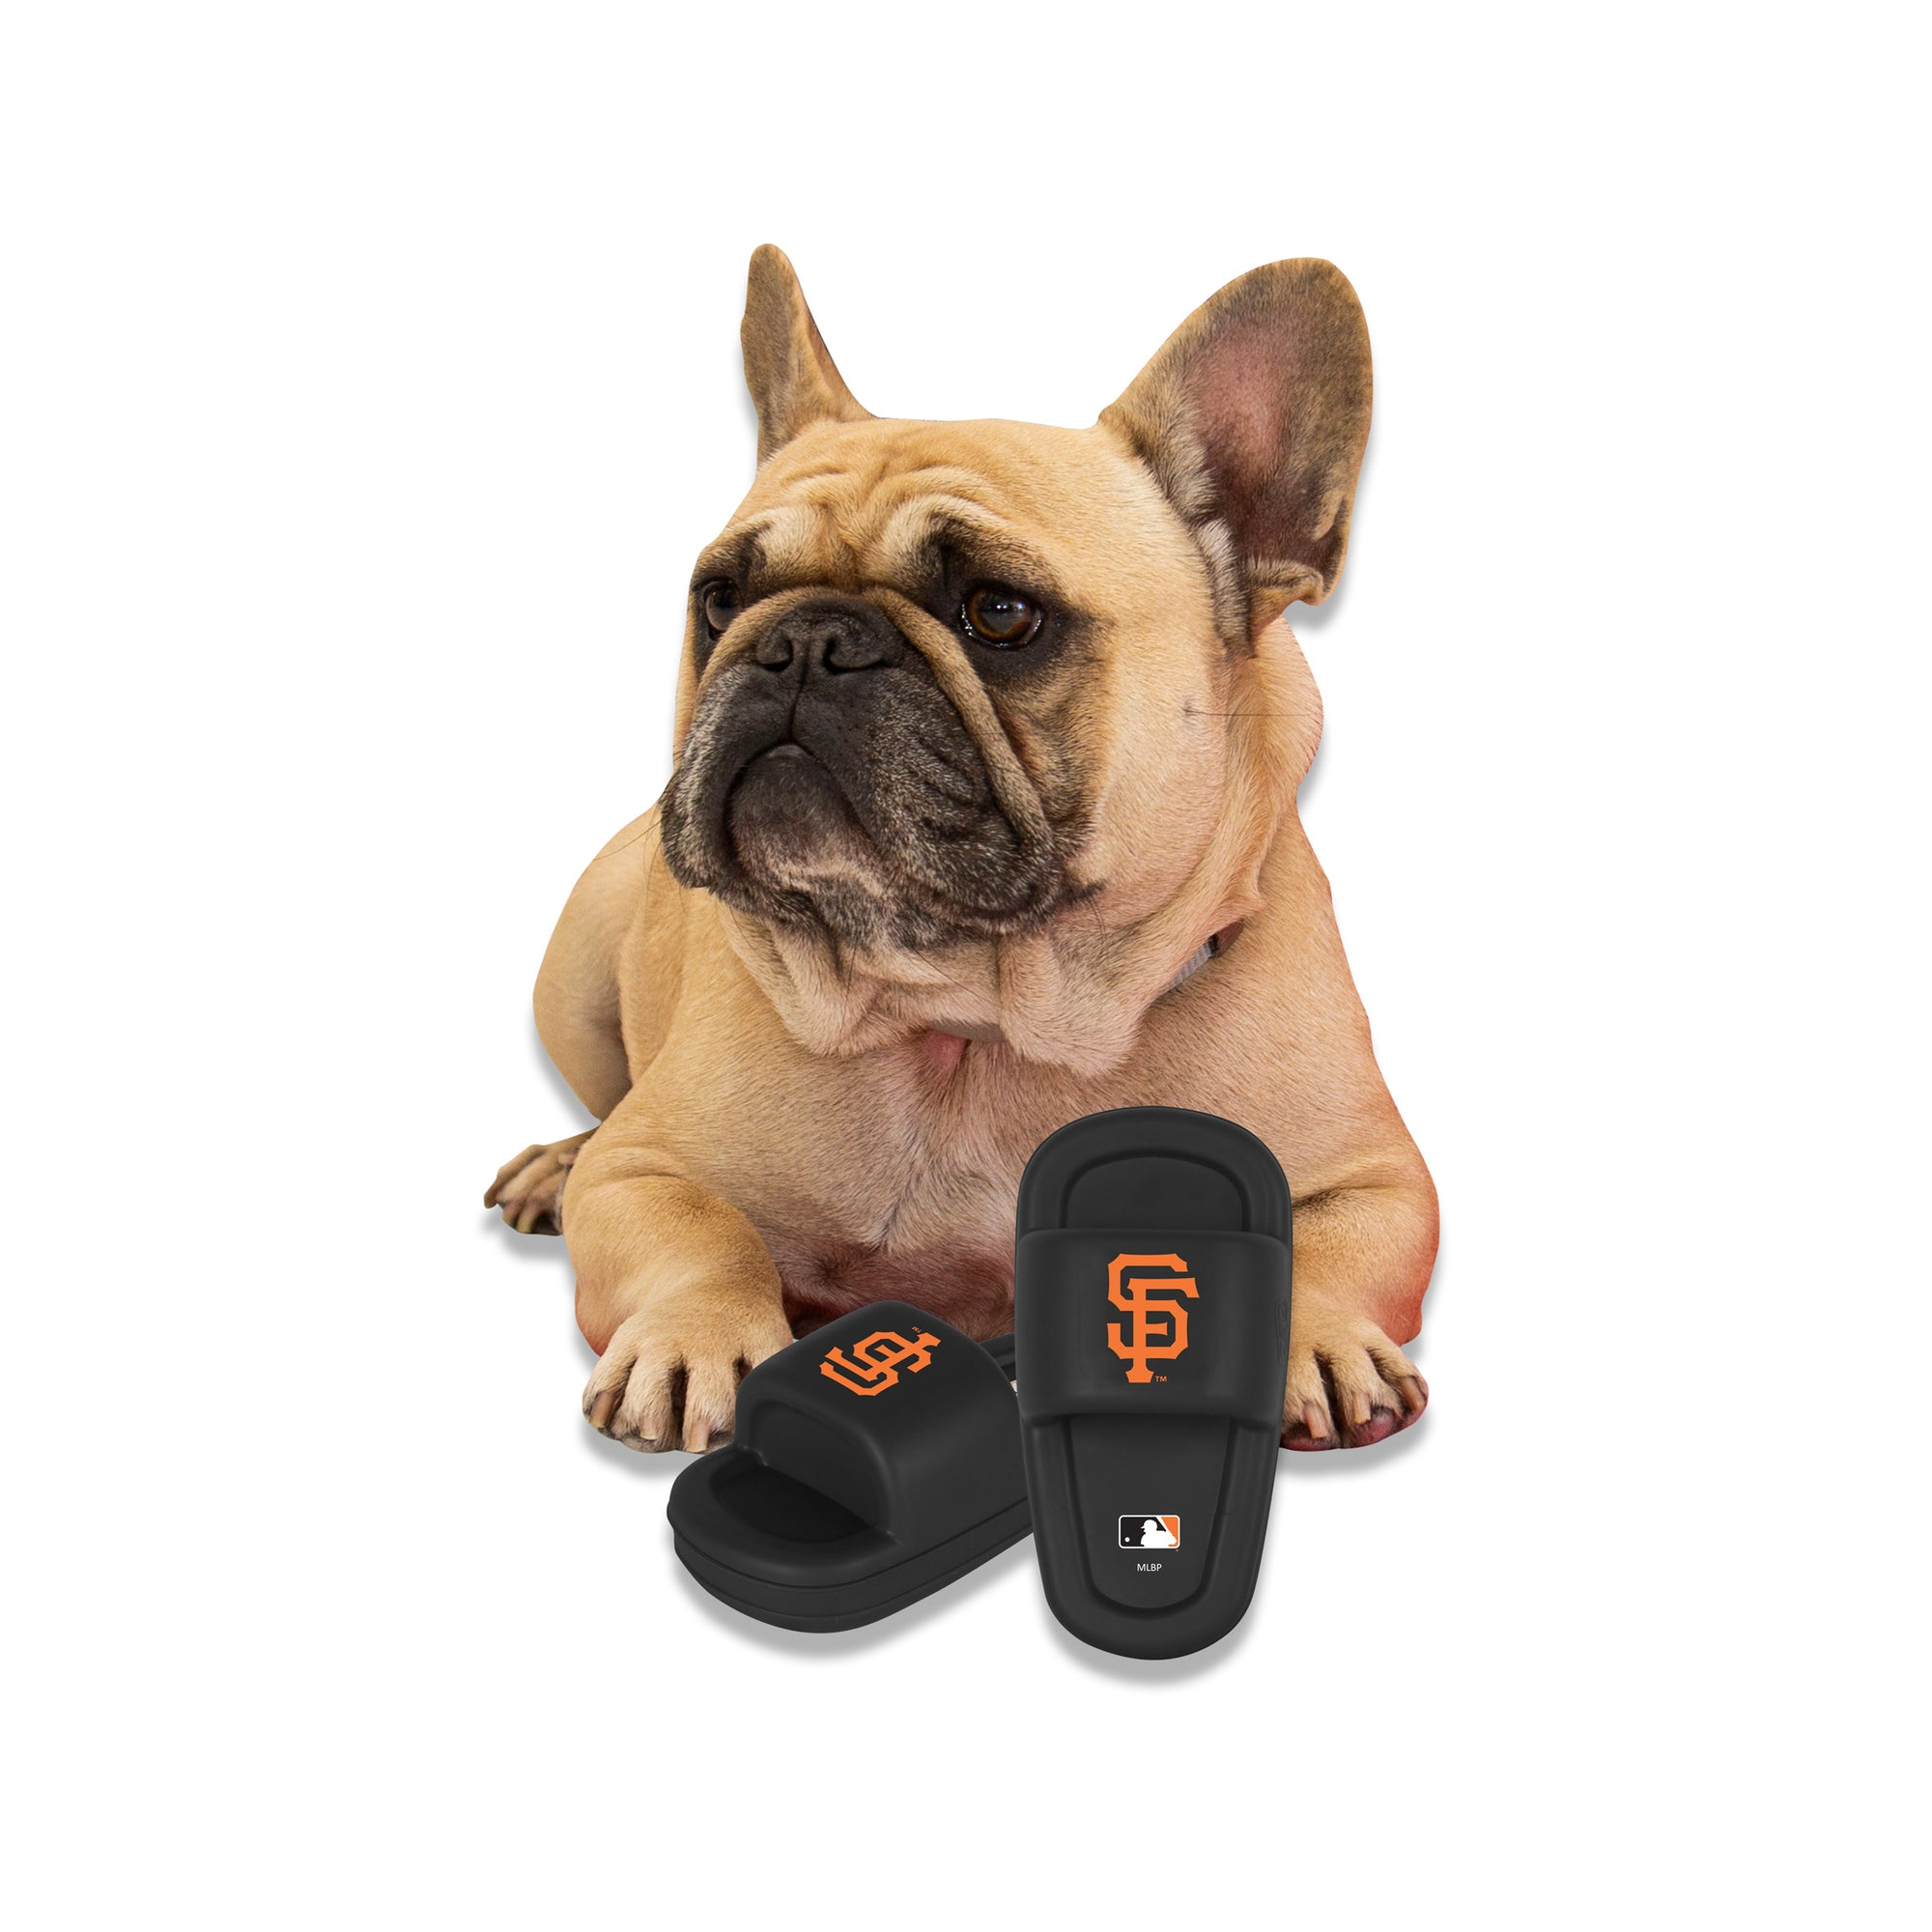 San Francisco Giants Mutt Slide Dog Chew Toy